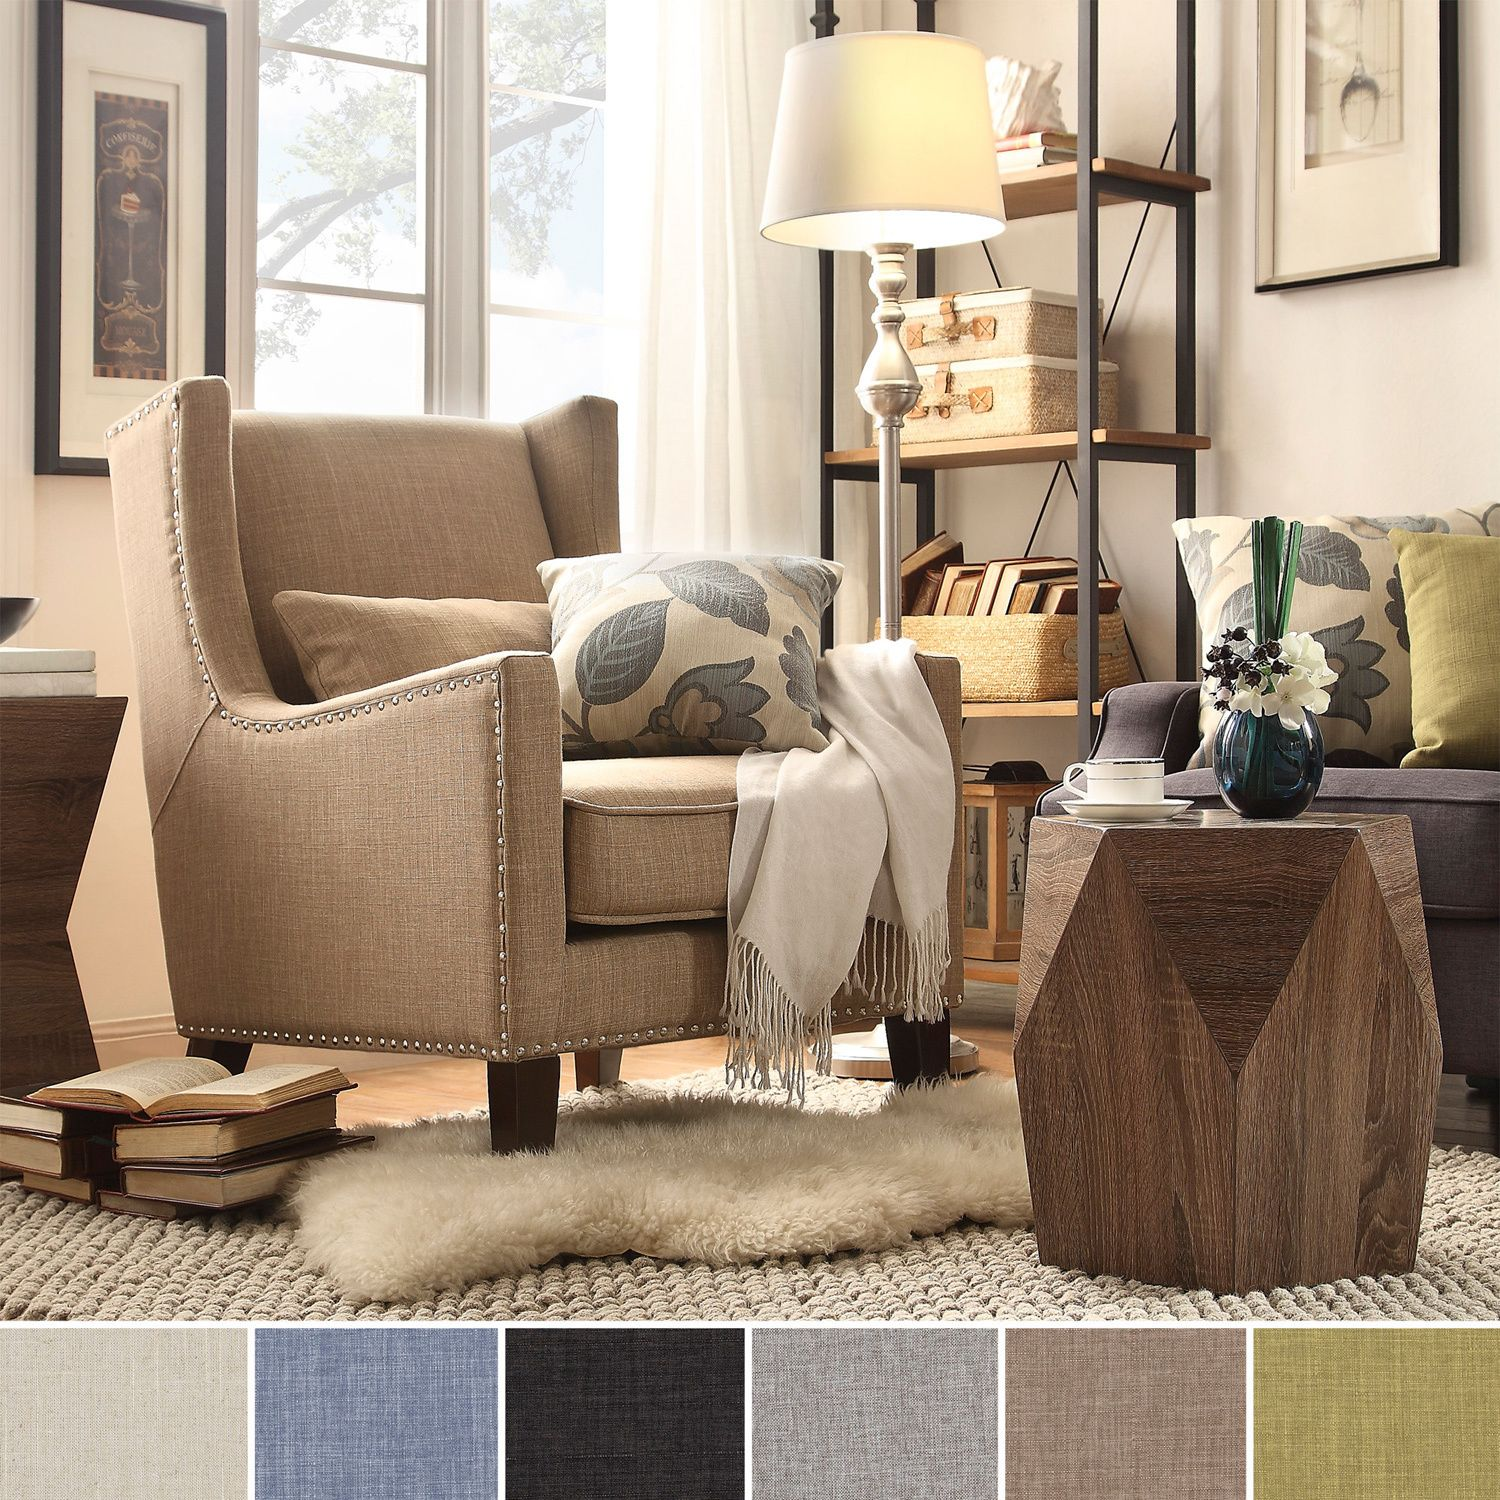 Great chairs for your Office Lounge Henry Wingback Nailhead Upholstered  Club Chair with Pillow